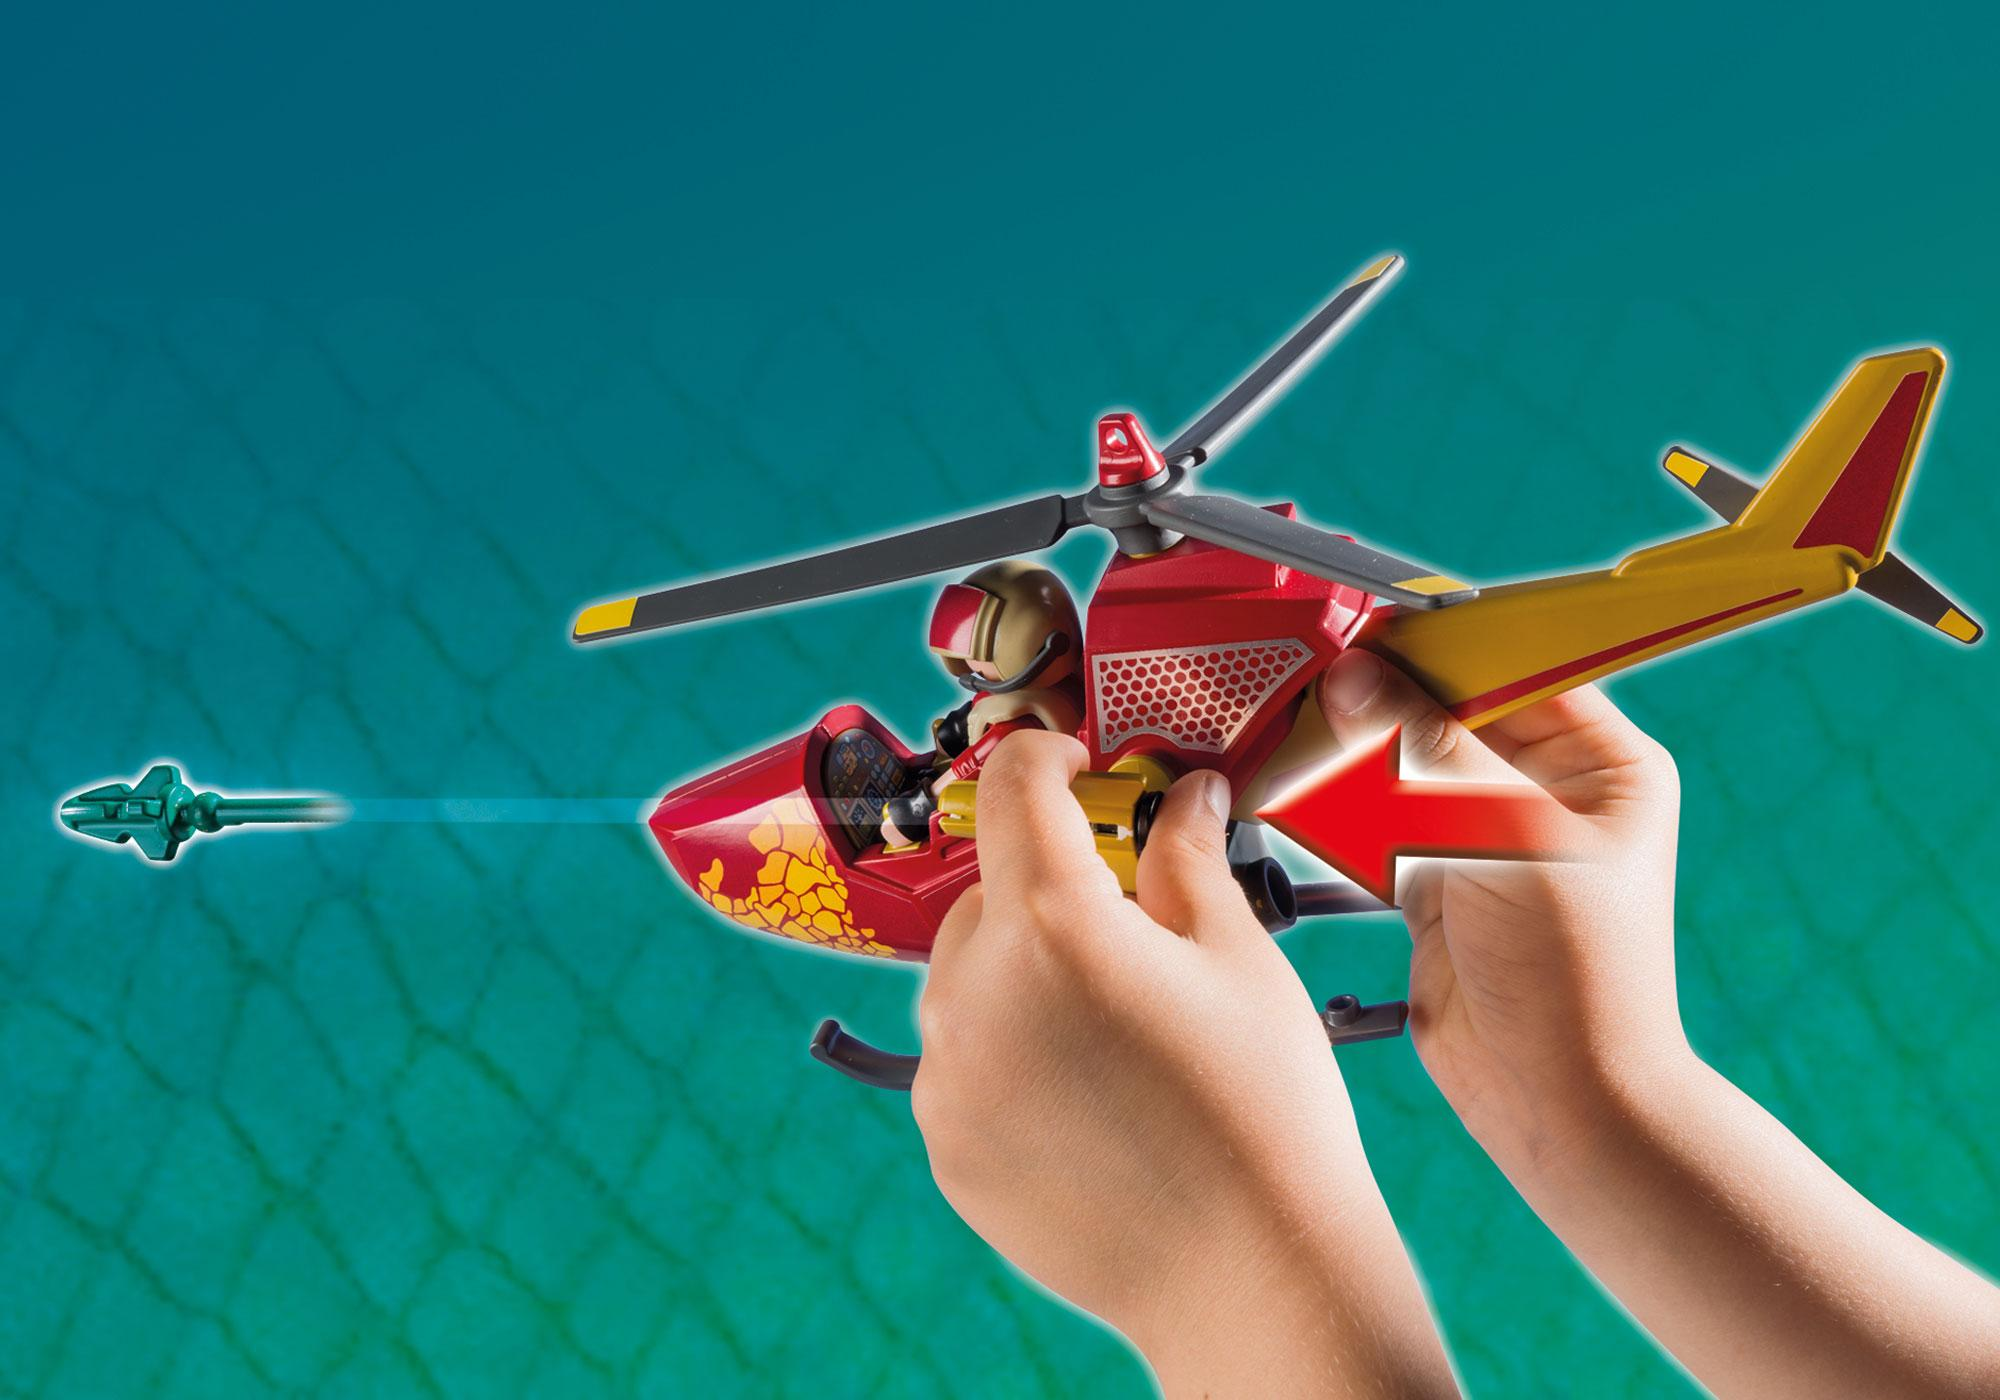 http://media.playmobil.com/i/playmobil/9430_product_extra2/Helikopter mit Flugsaurier